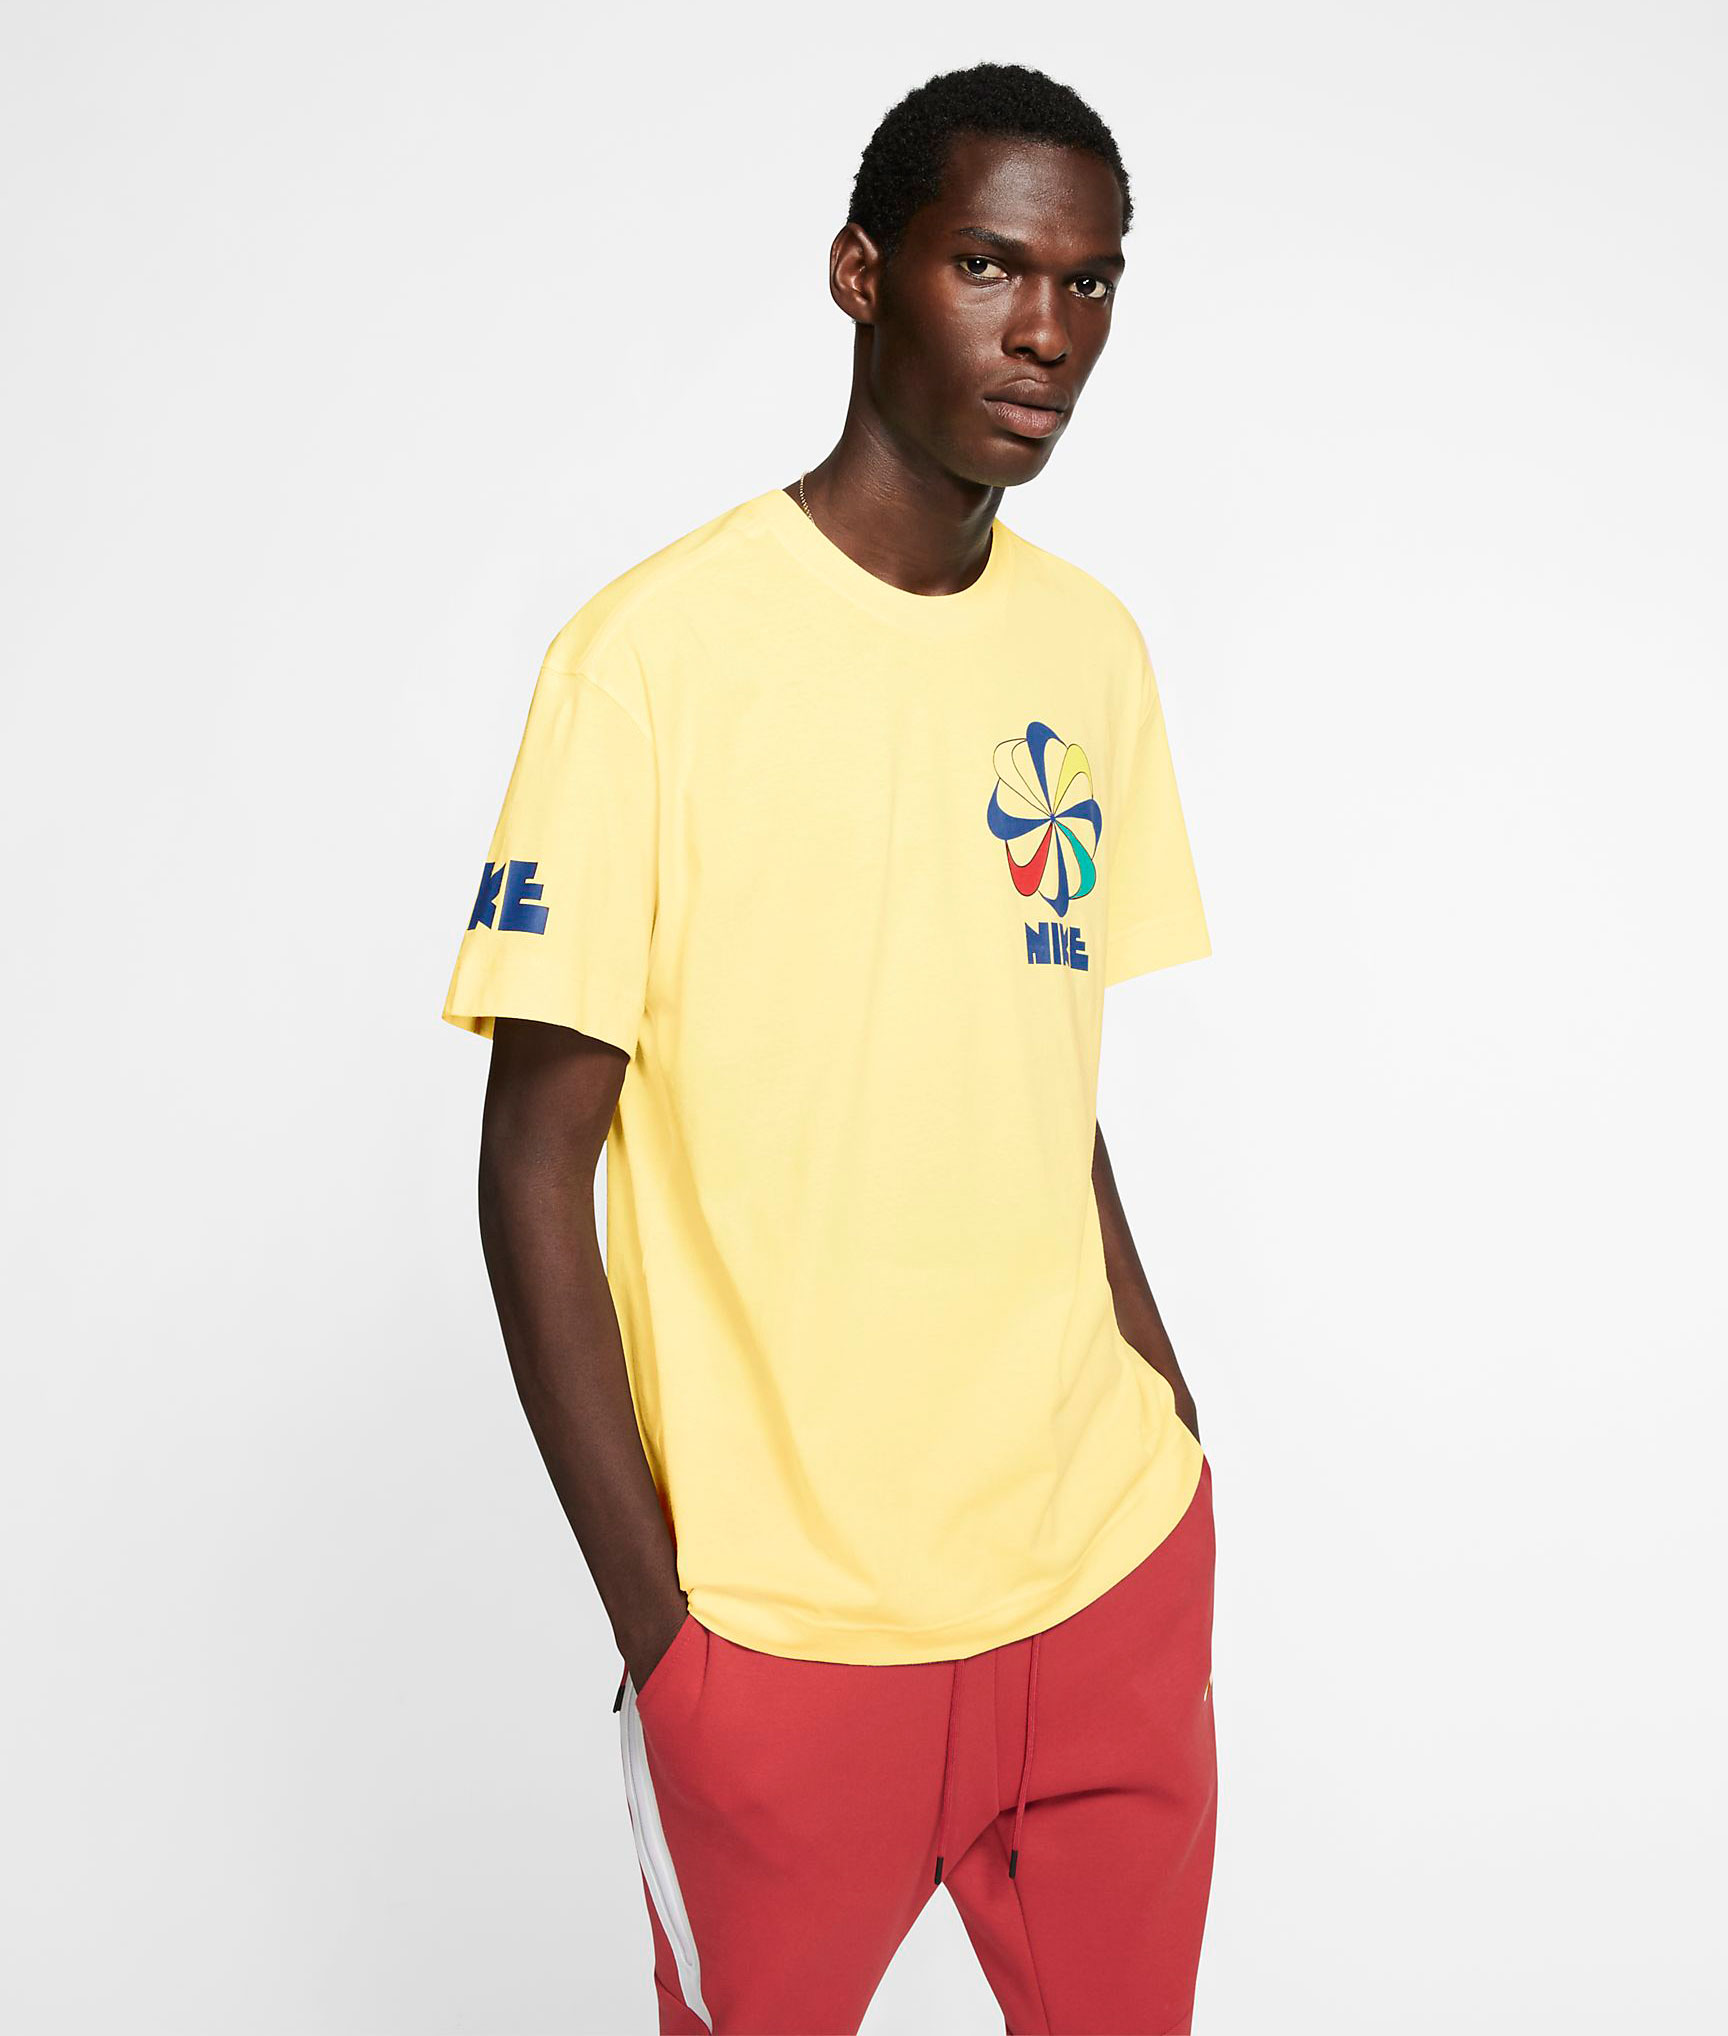 nike-sunburst-pinwheel-shirt-yellow-1